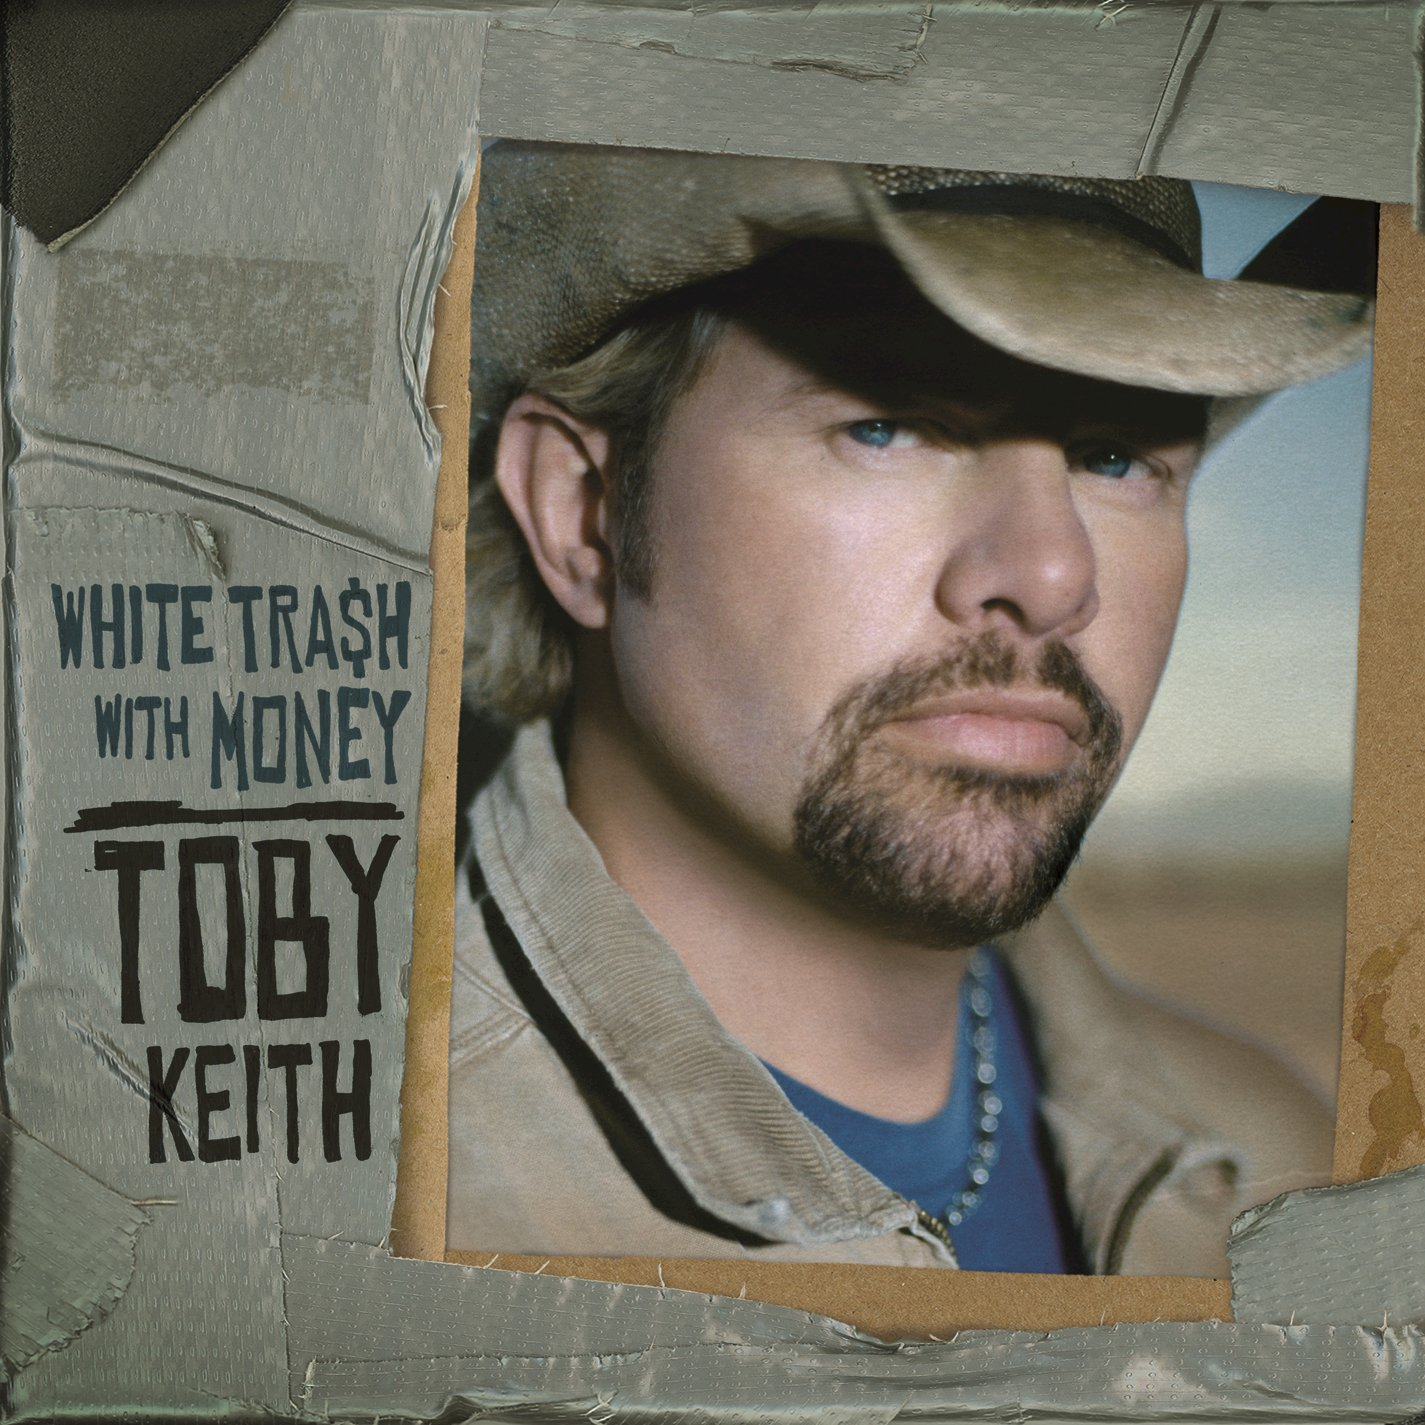 Toby Keith – White Trash With Money (2006) [FLAC]